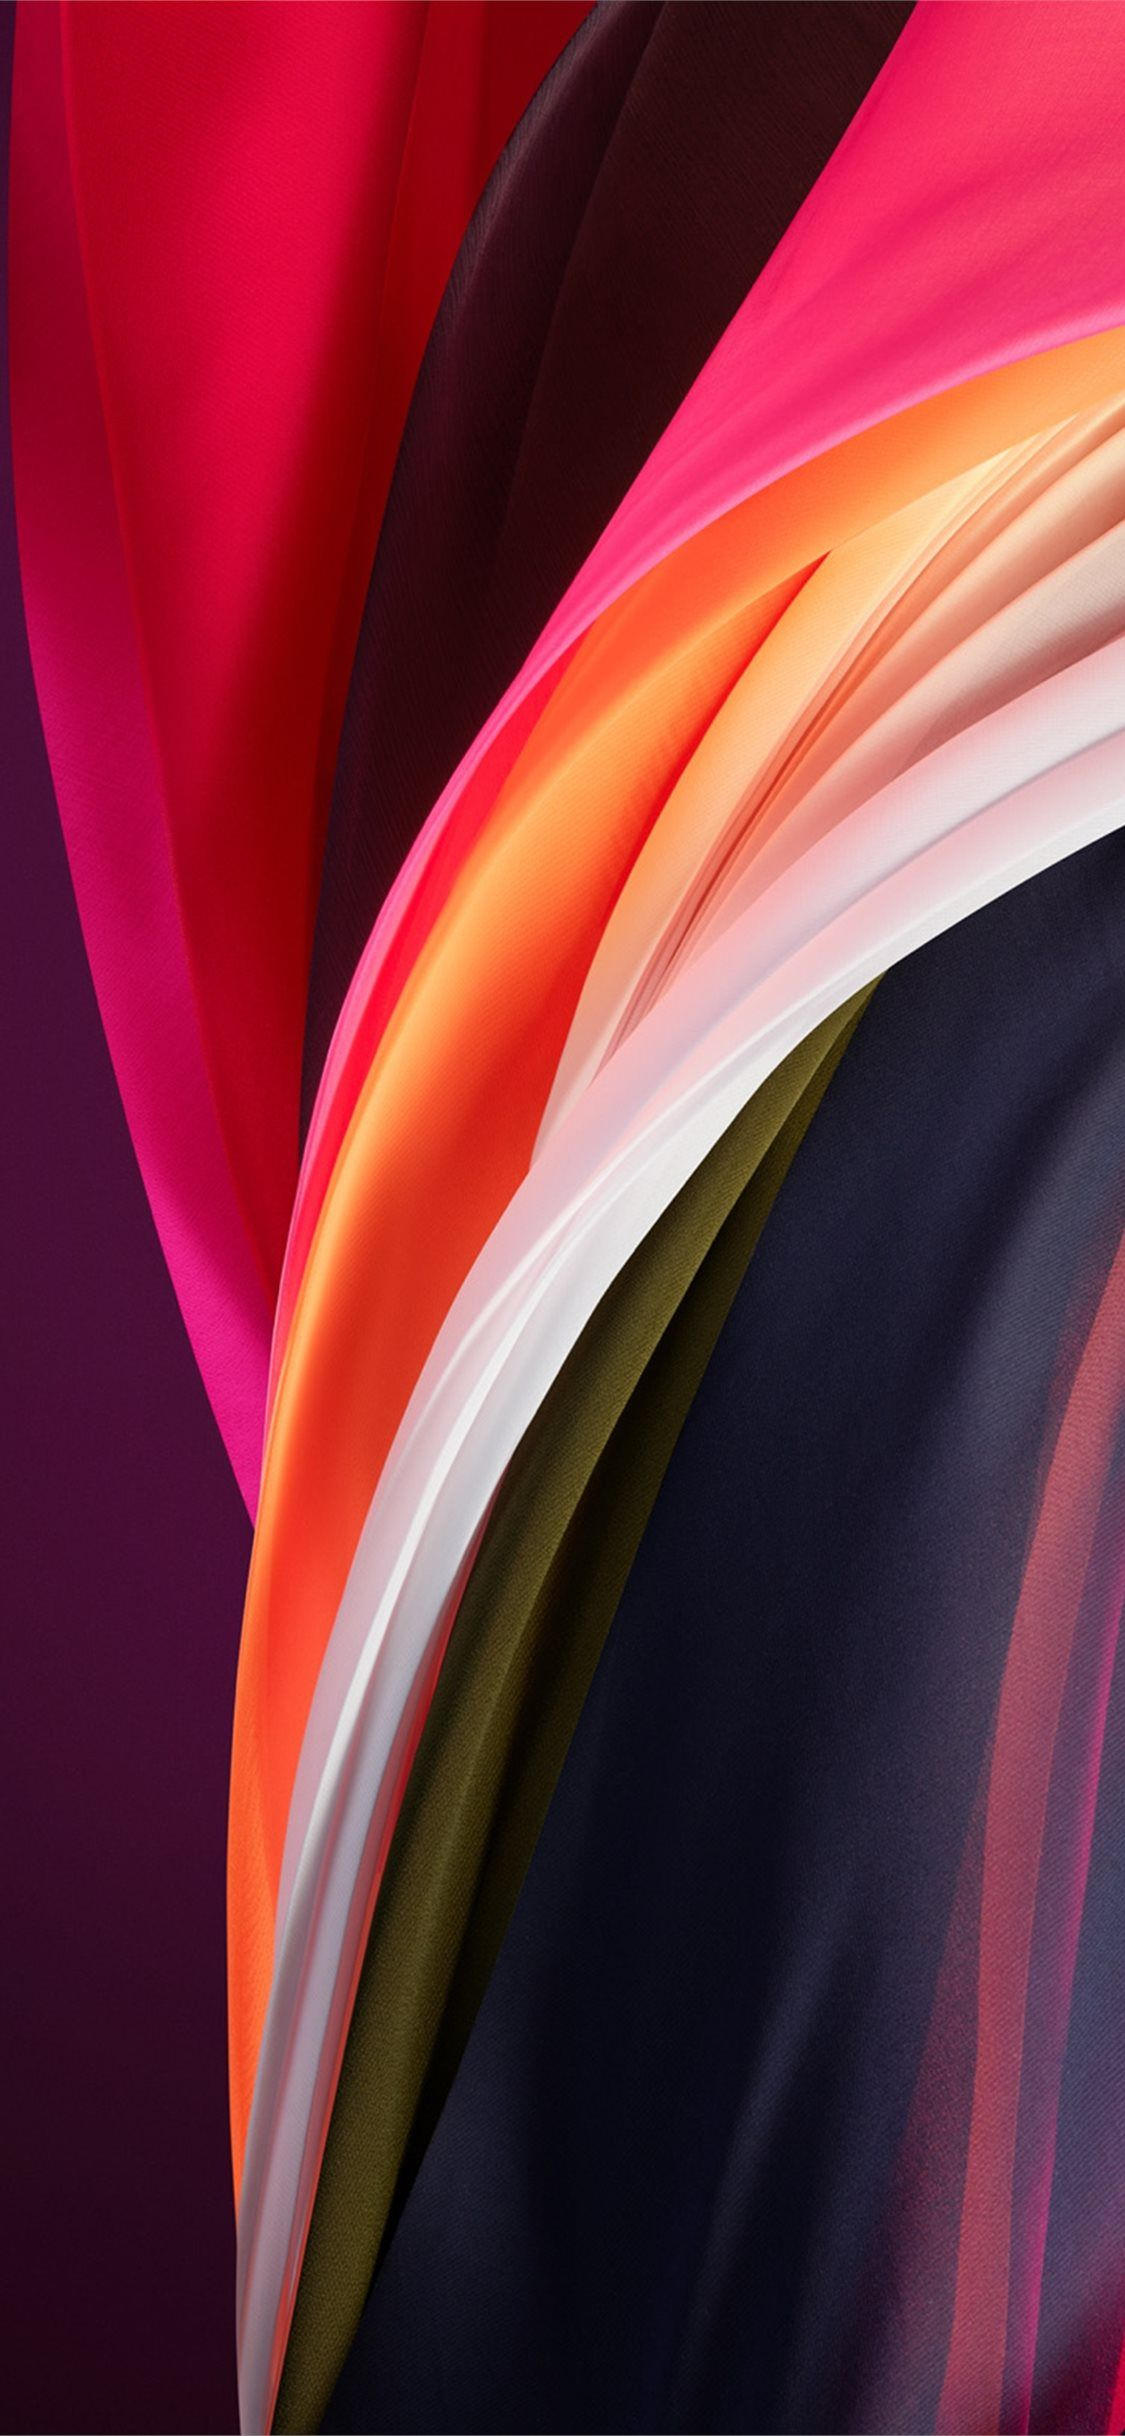 Pin on iPhone X Wallpapers